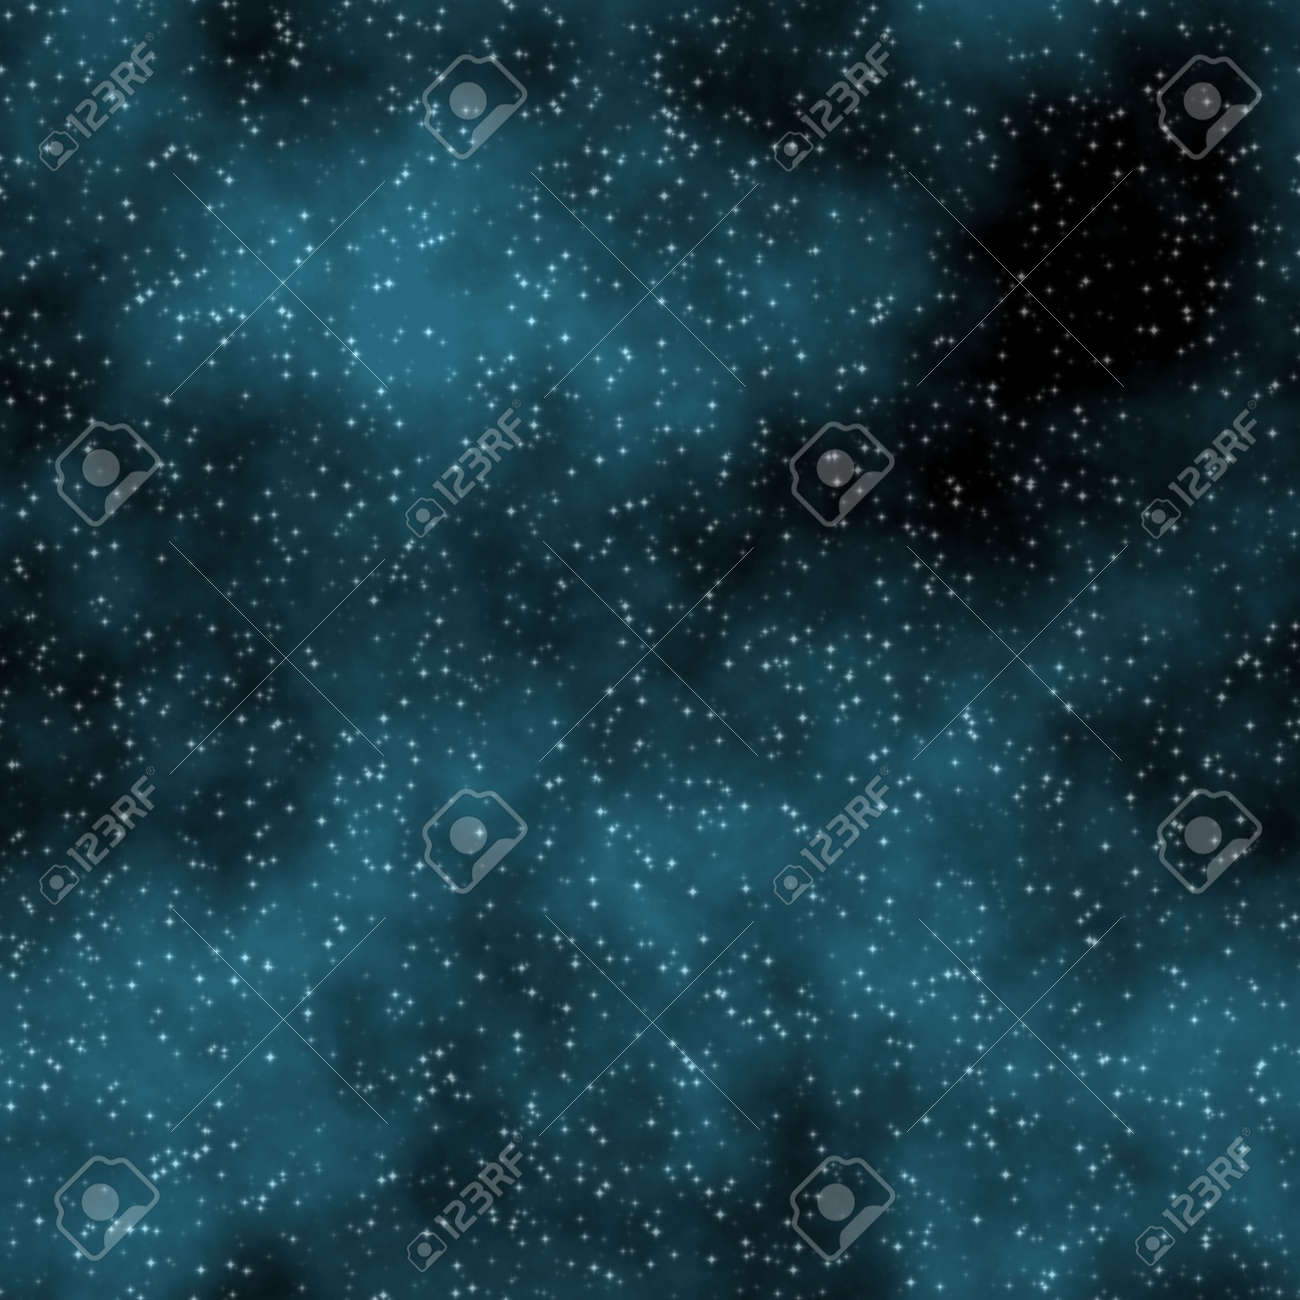 blue night sky with nebula and stars that tiles seamless in all directions Stock Photo - 6343306